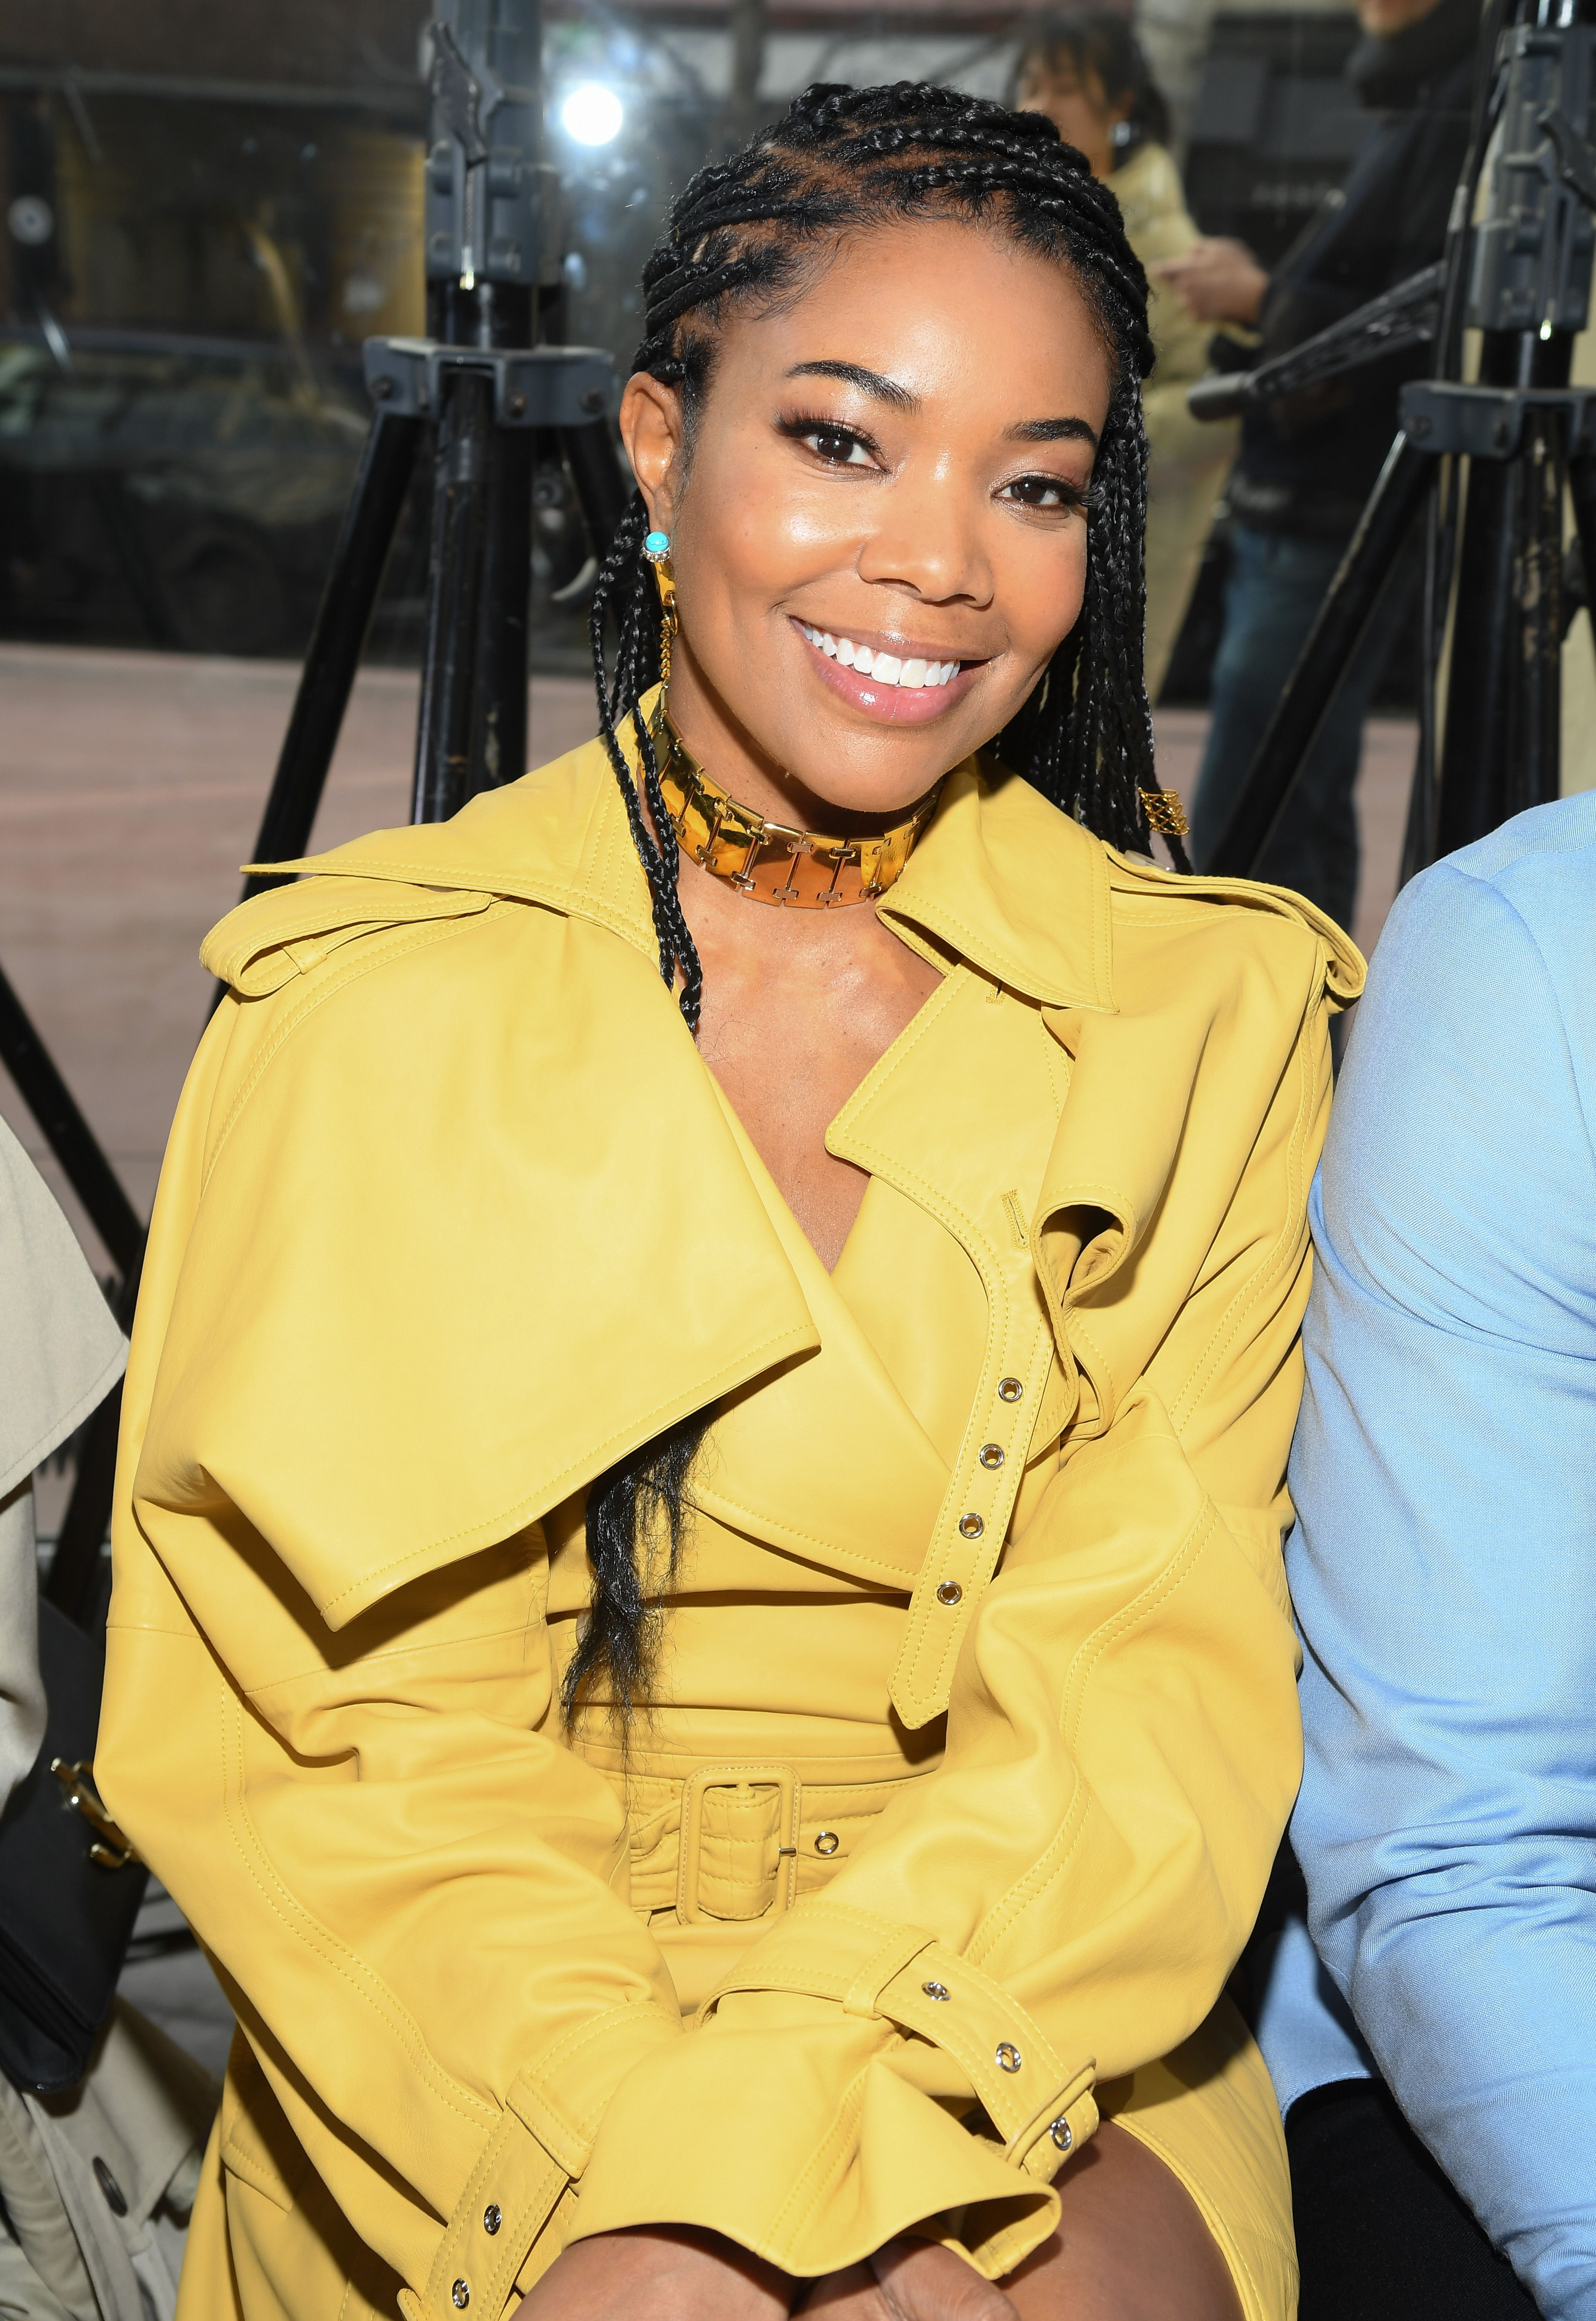 Gabrielle Union during the Lanvin Menswear Fall/Winter 2020-2021 show as part of Paris Fashion Week on January 19, 2020 in Paris, France. | Source: Getty Images